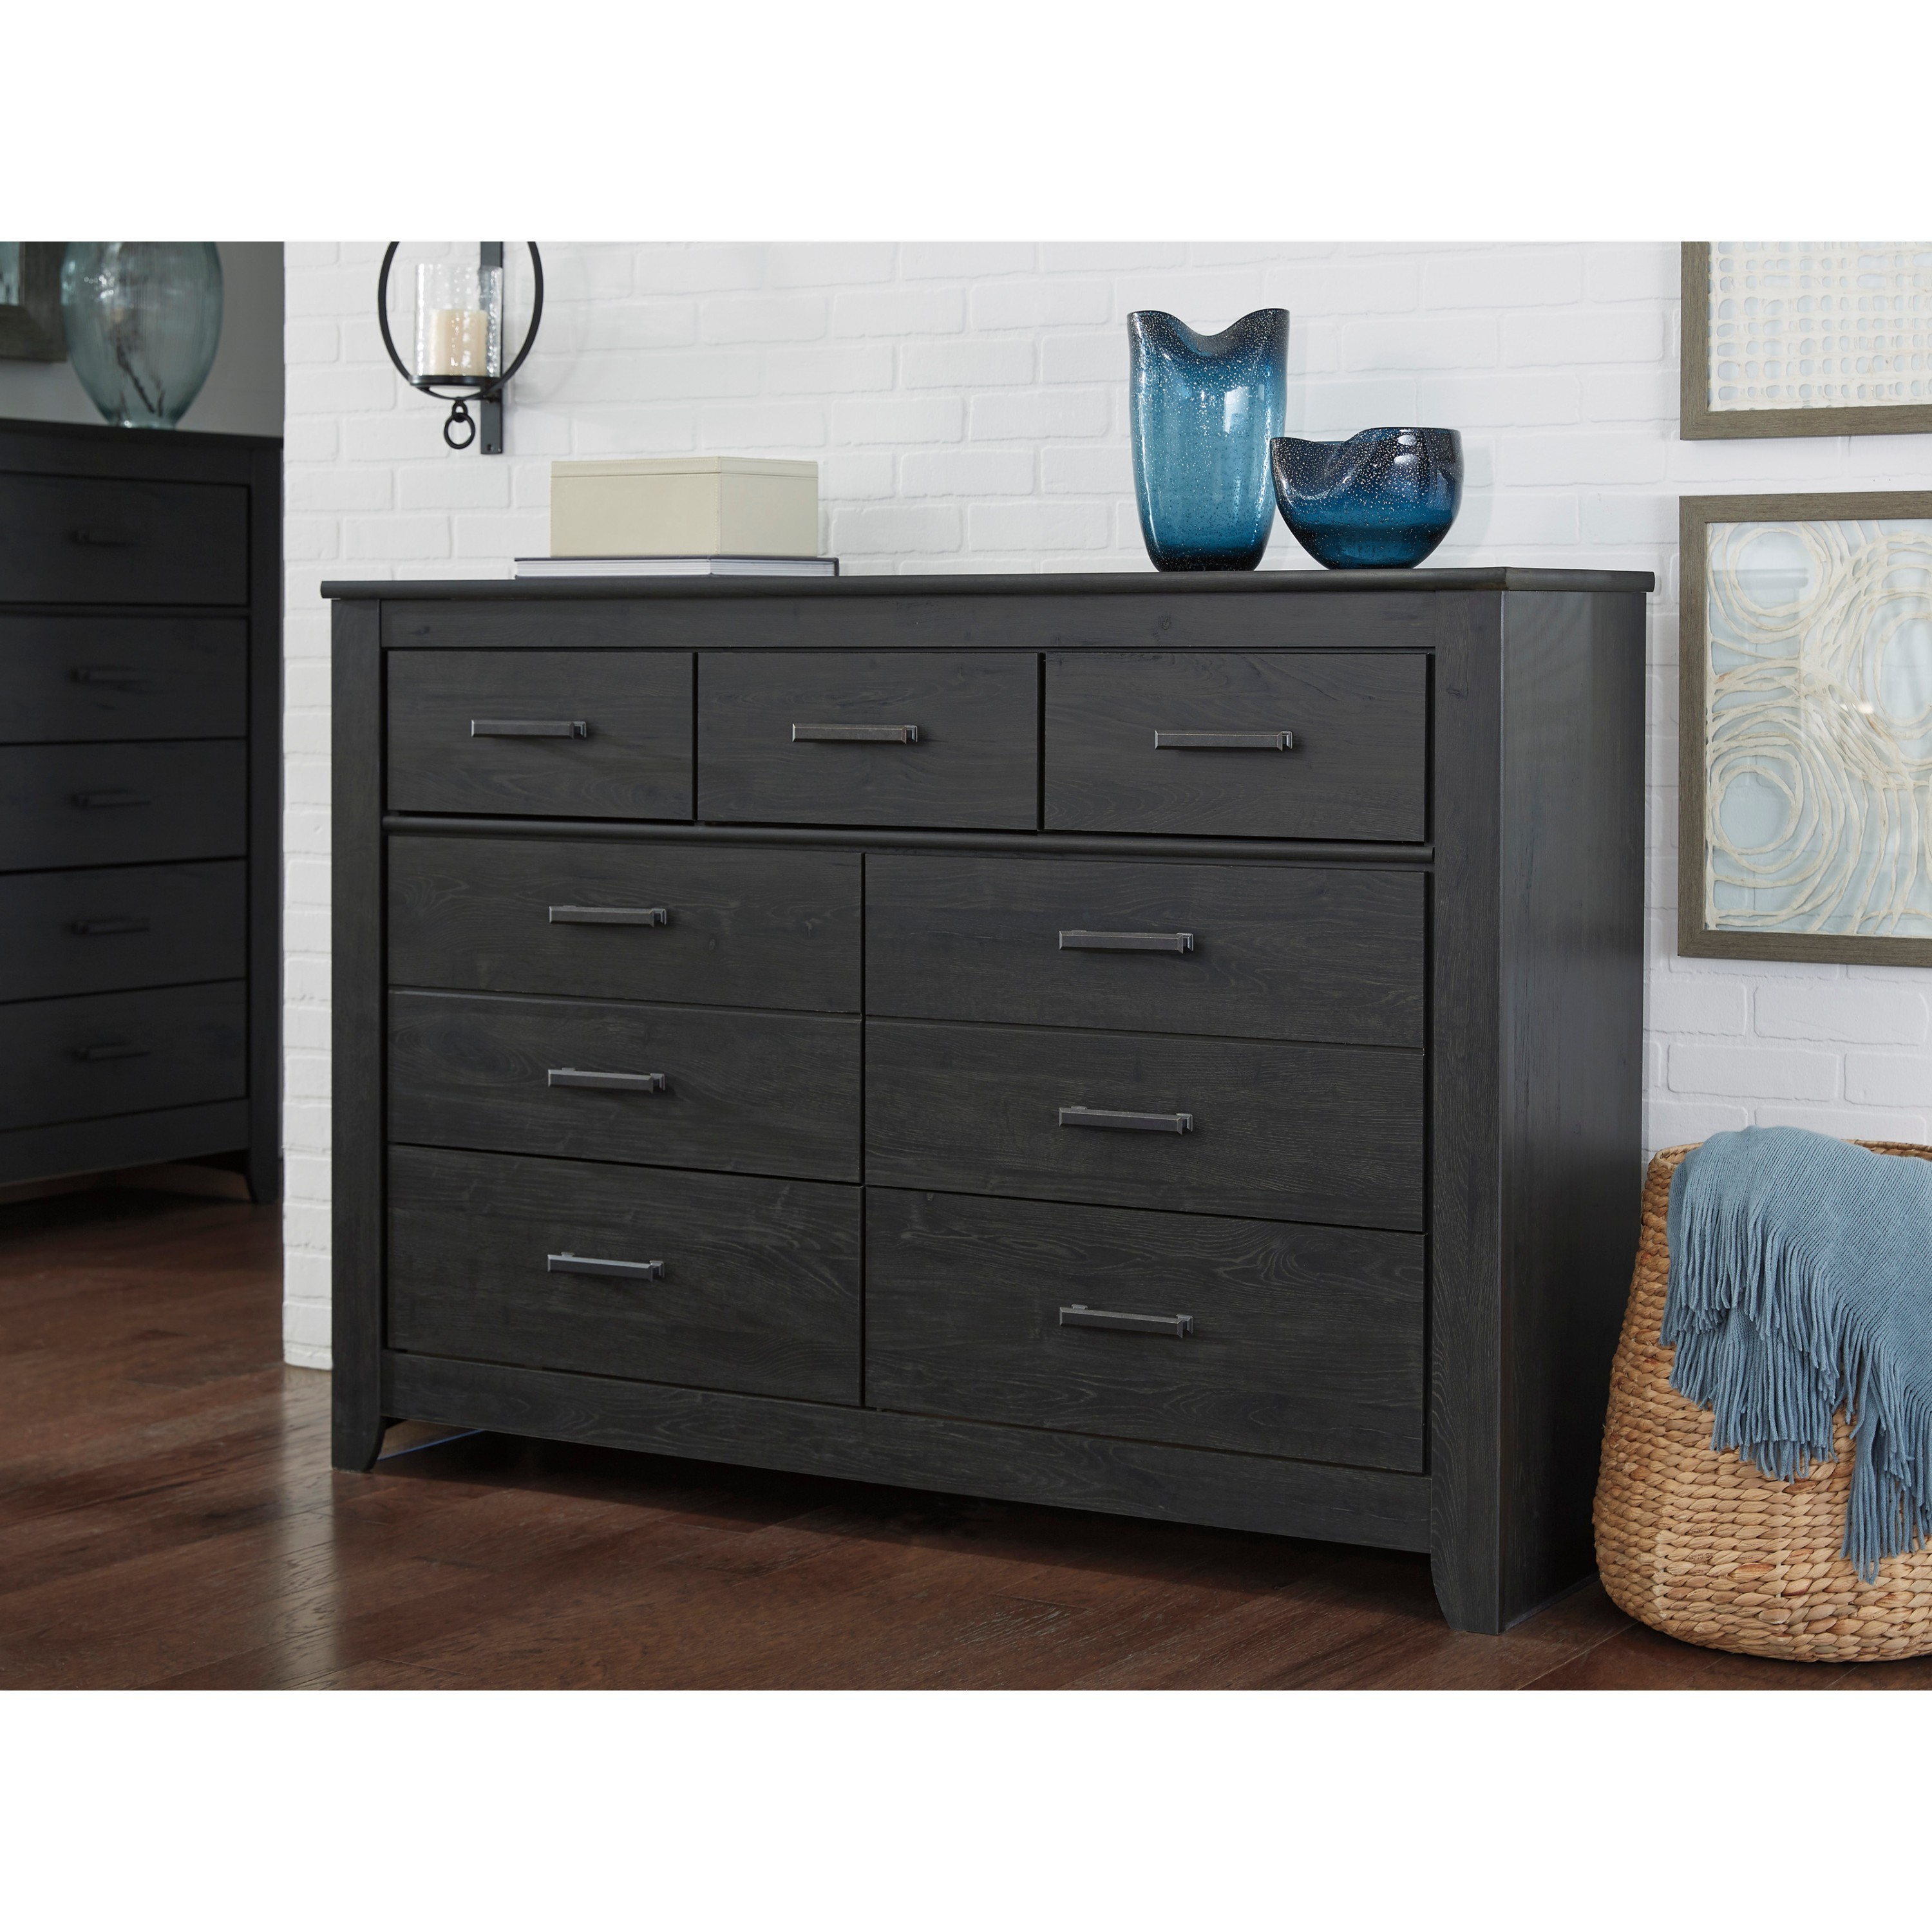 tall and wood white design bedside dresser chest bedroom nightstands mirrored nightstand table drawers matching of black